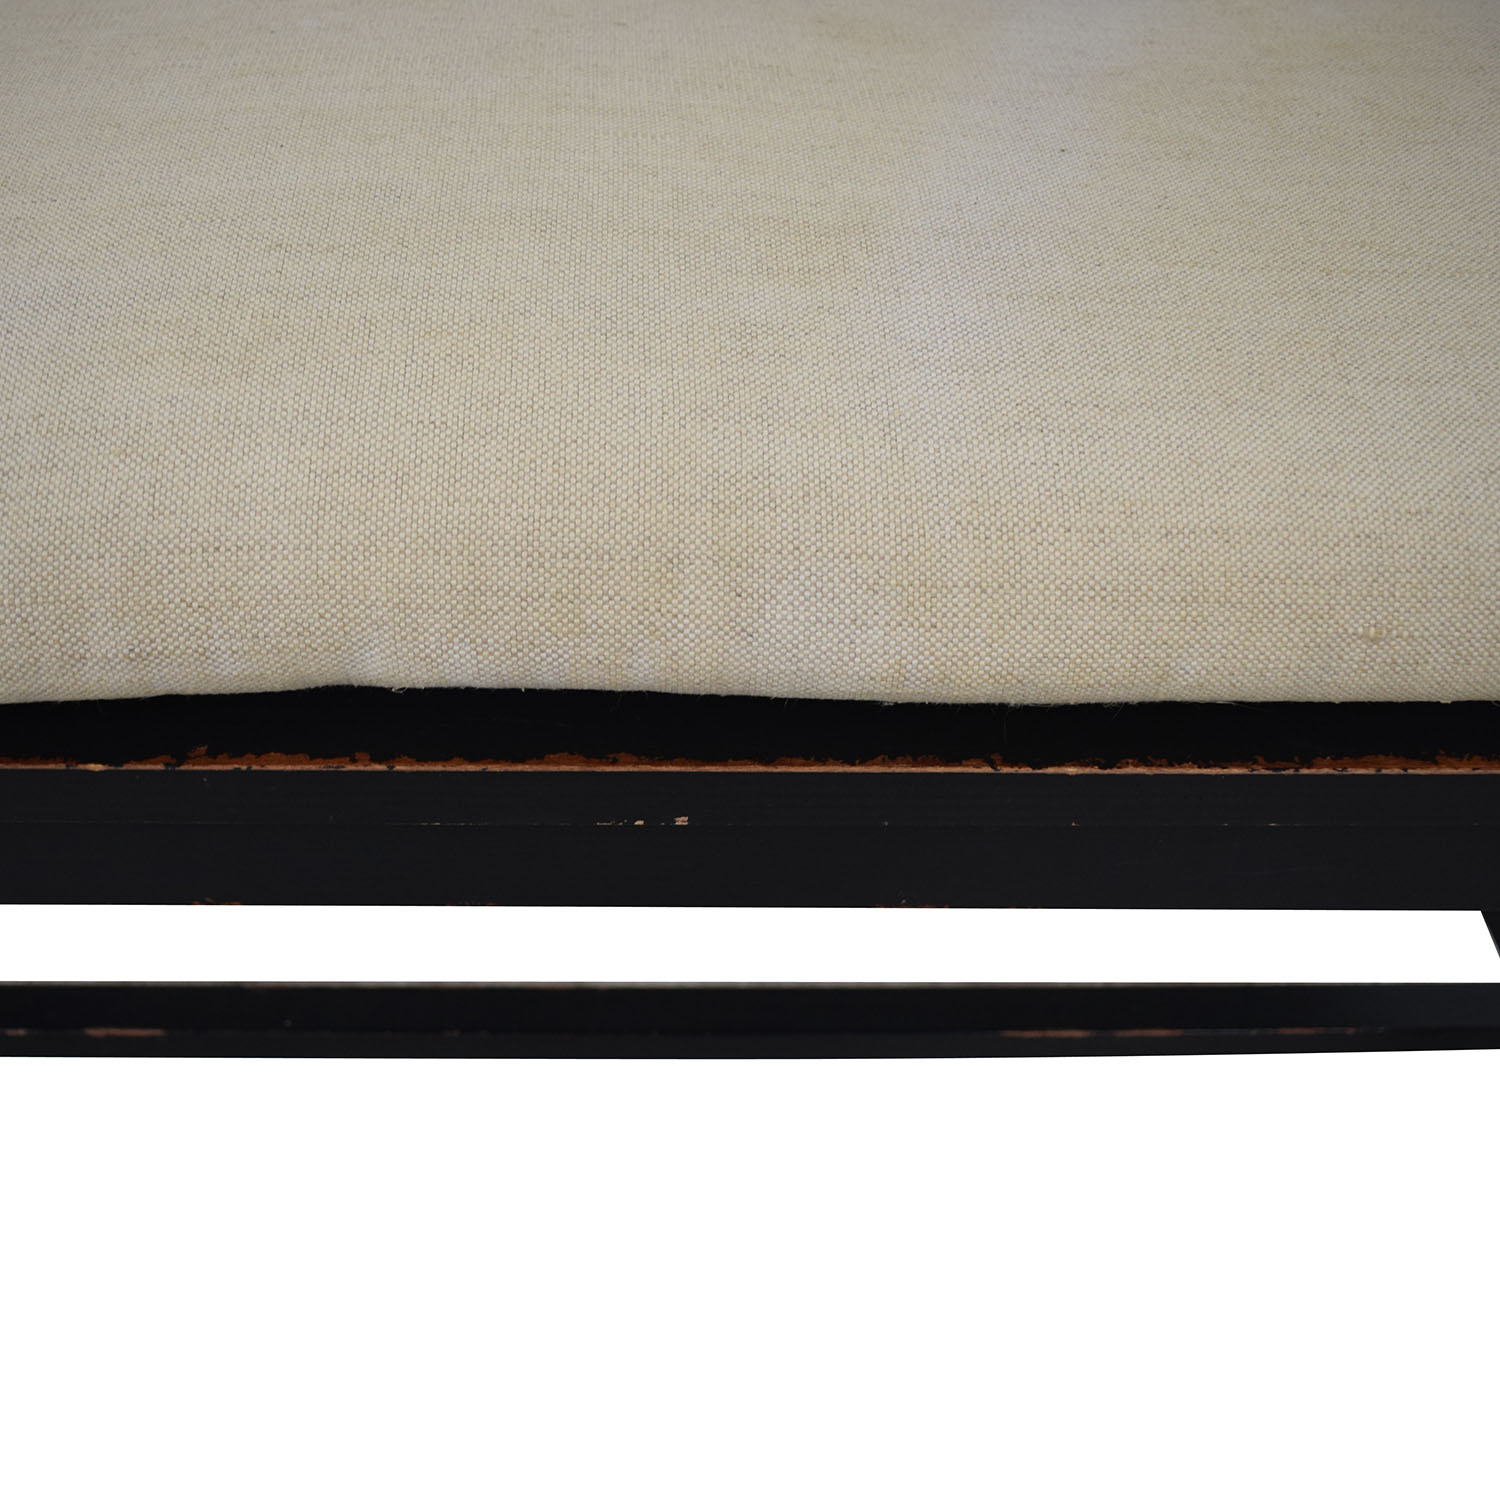 Crate & Barrel Crate & Barrel Wood Bench with Cushion for sale